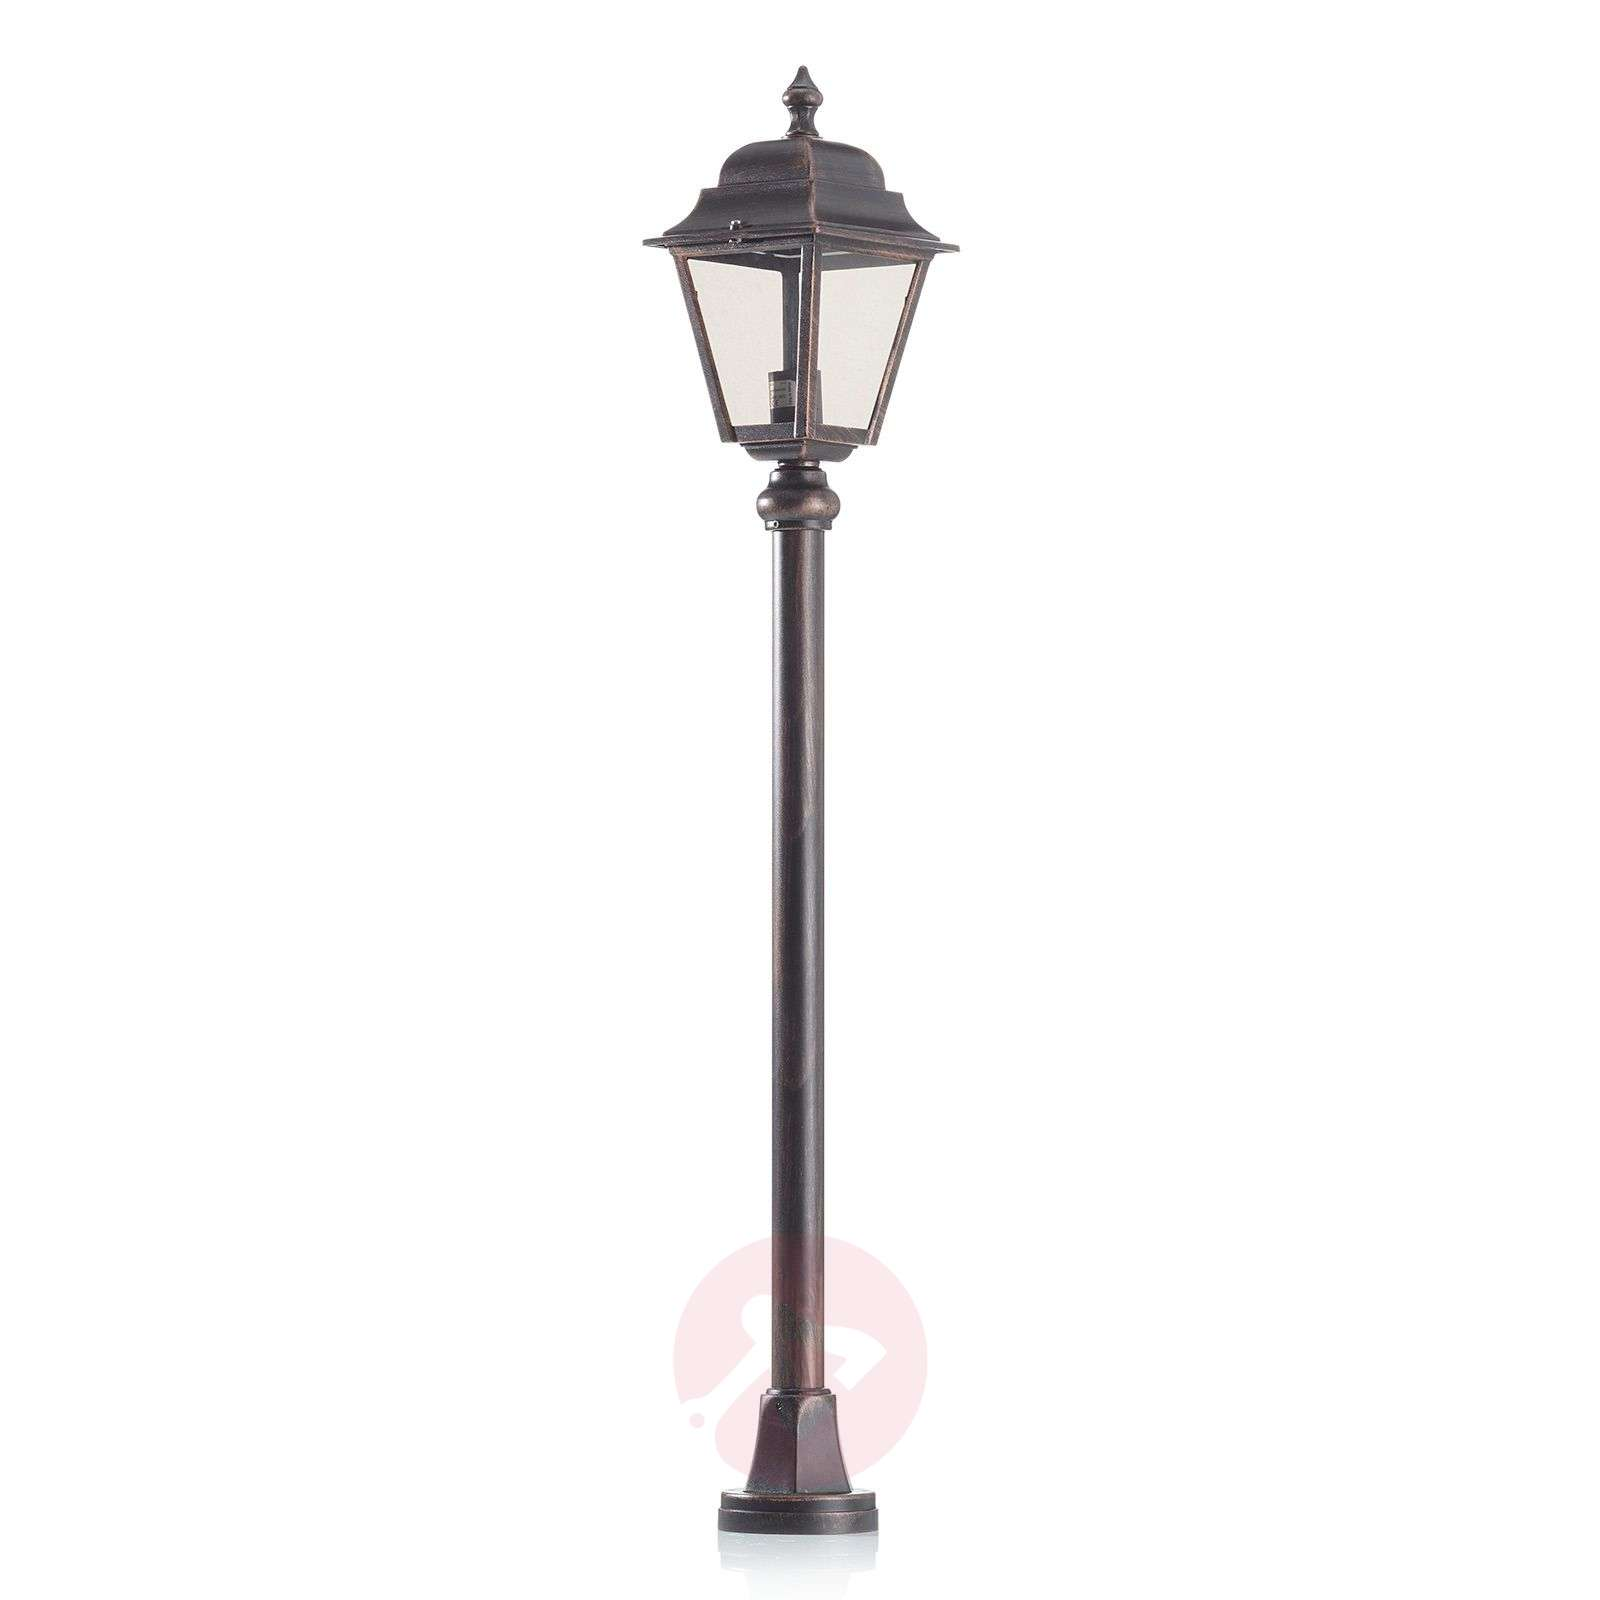 Toulouse path light with an antique design-6068038-01